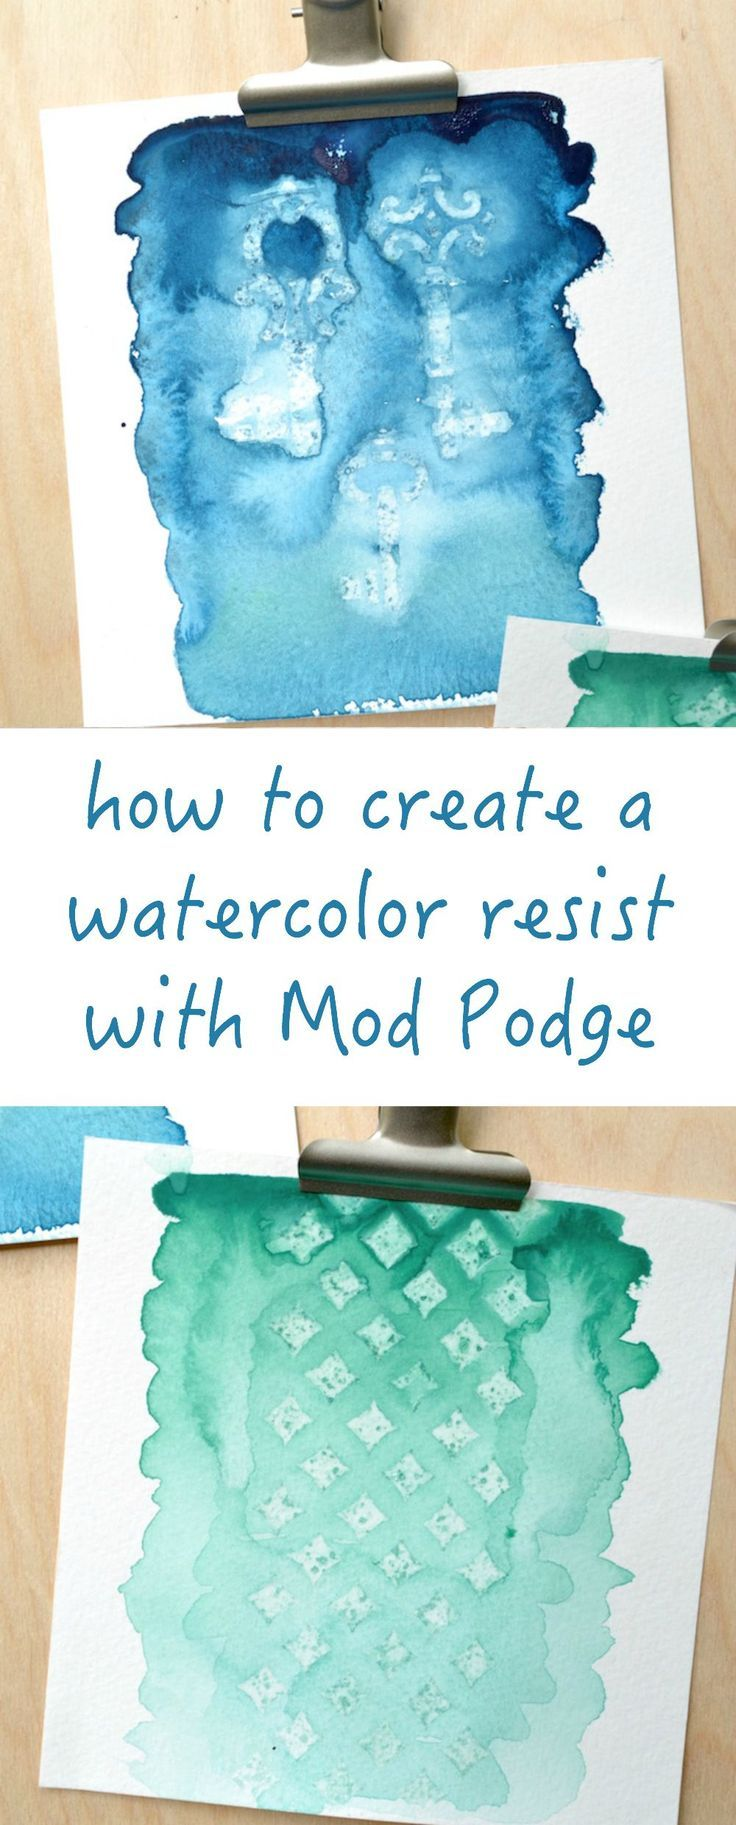 how to create a watercolor resist with Mod Podge